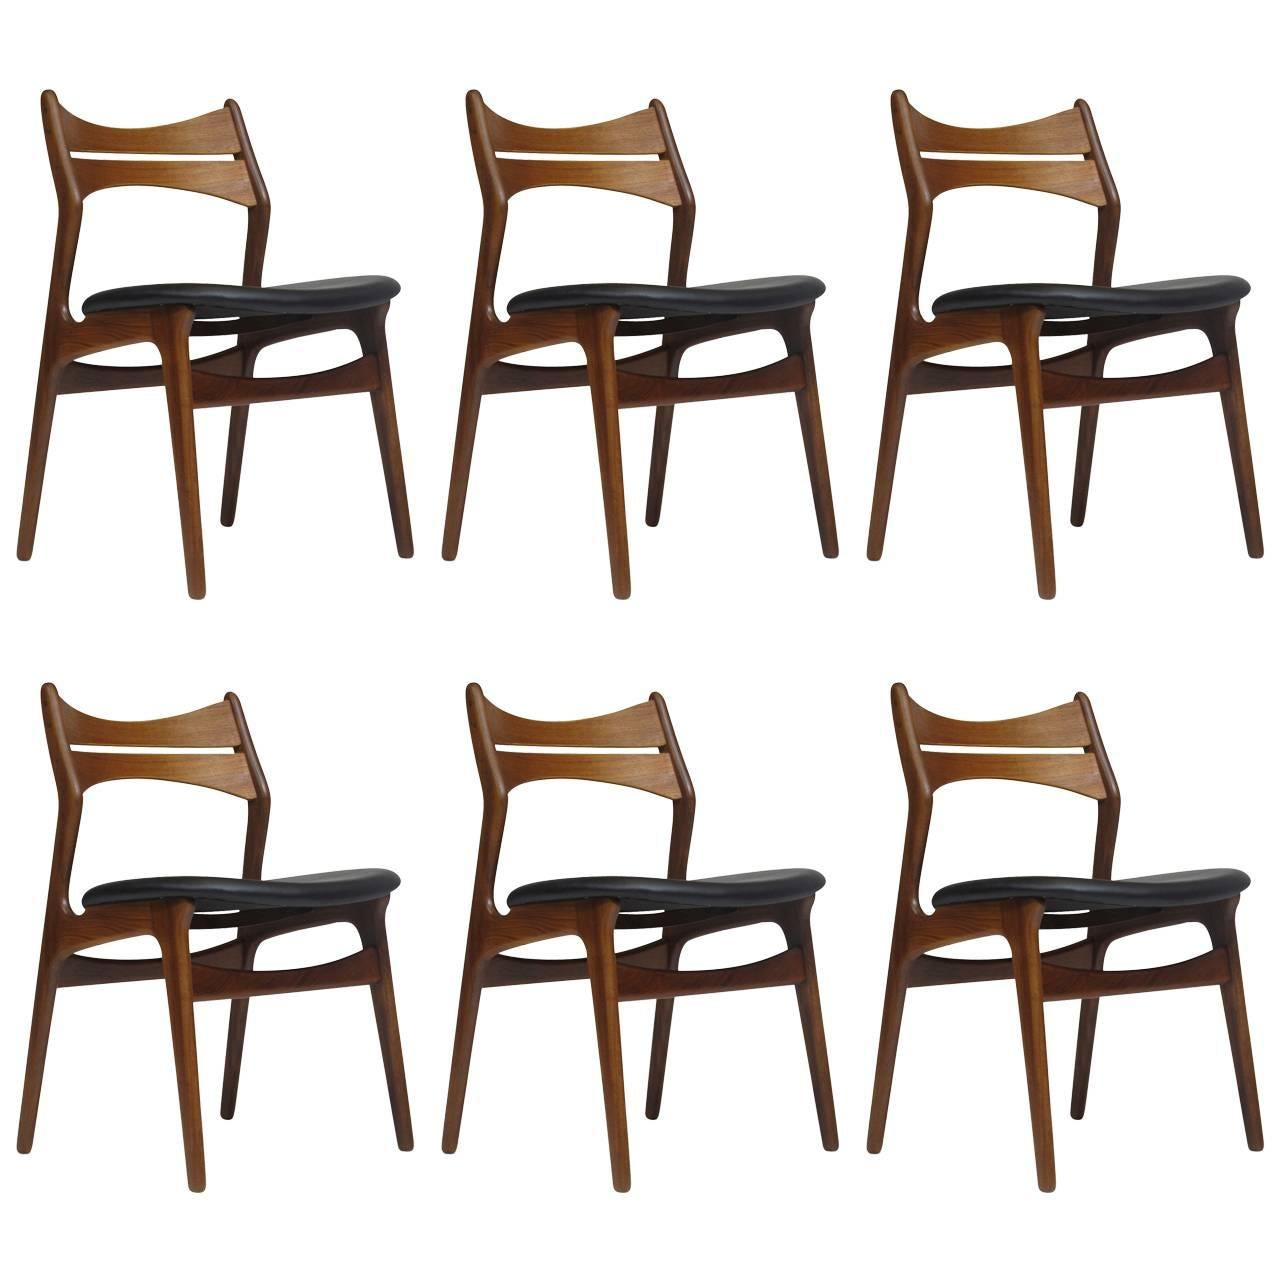 erik buck chairs kids activity table and set of eight model 49 teak dining at 1stdibs 1960s danish six 45 available